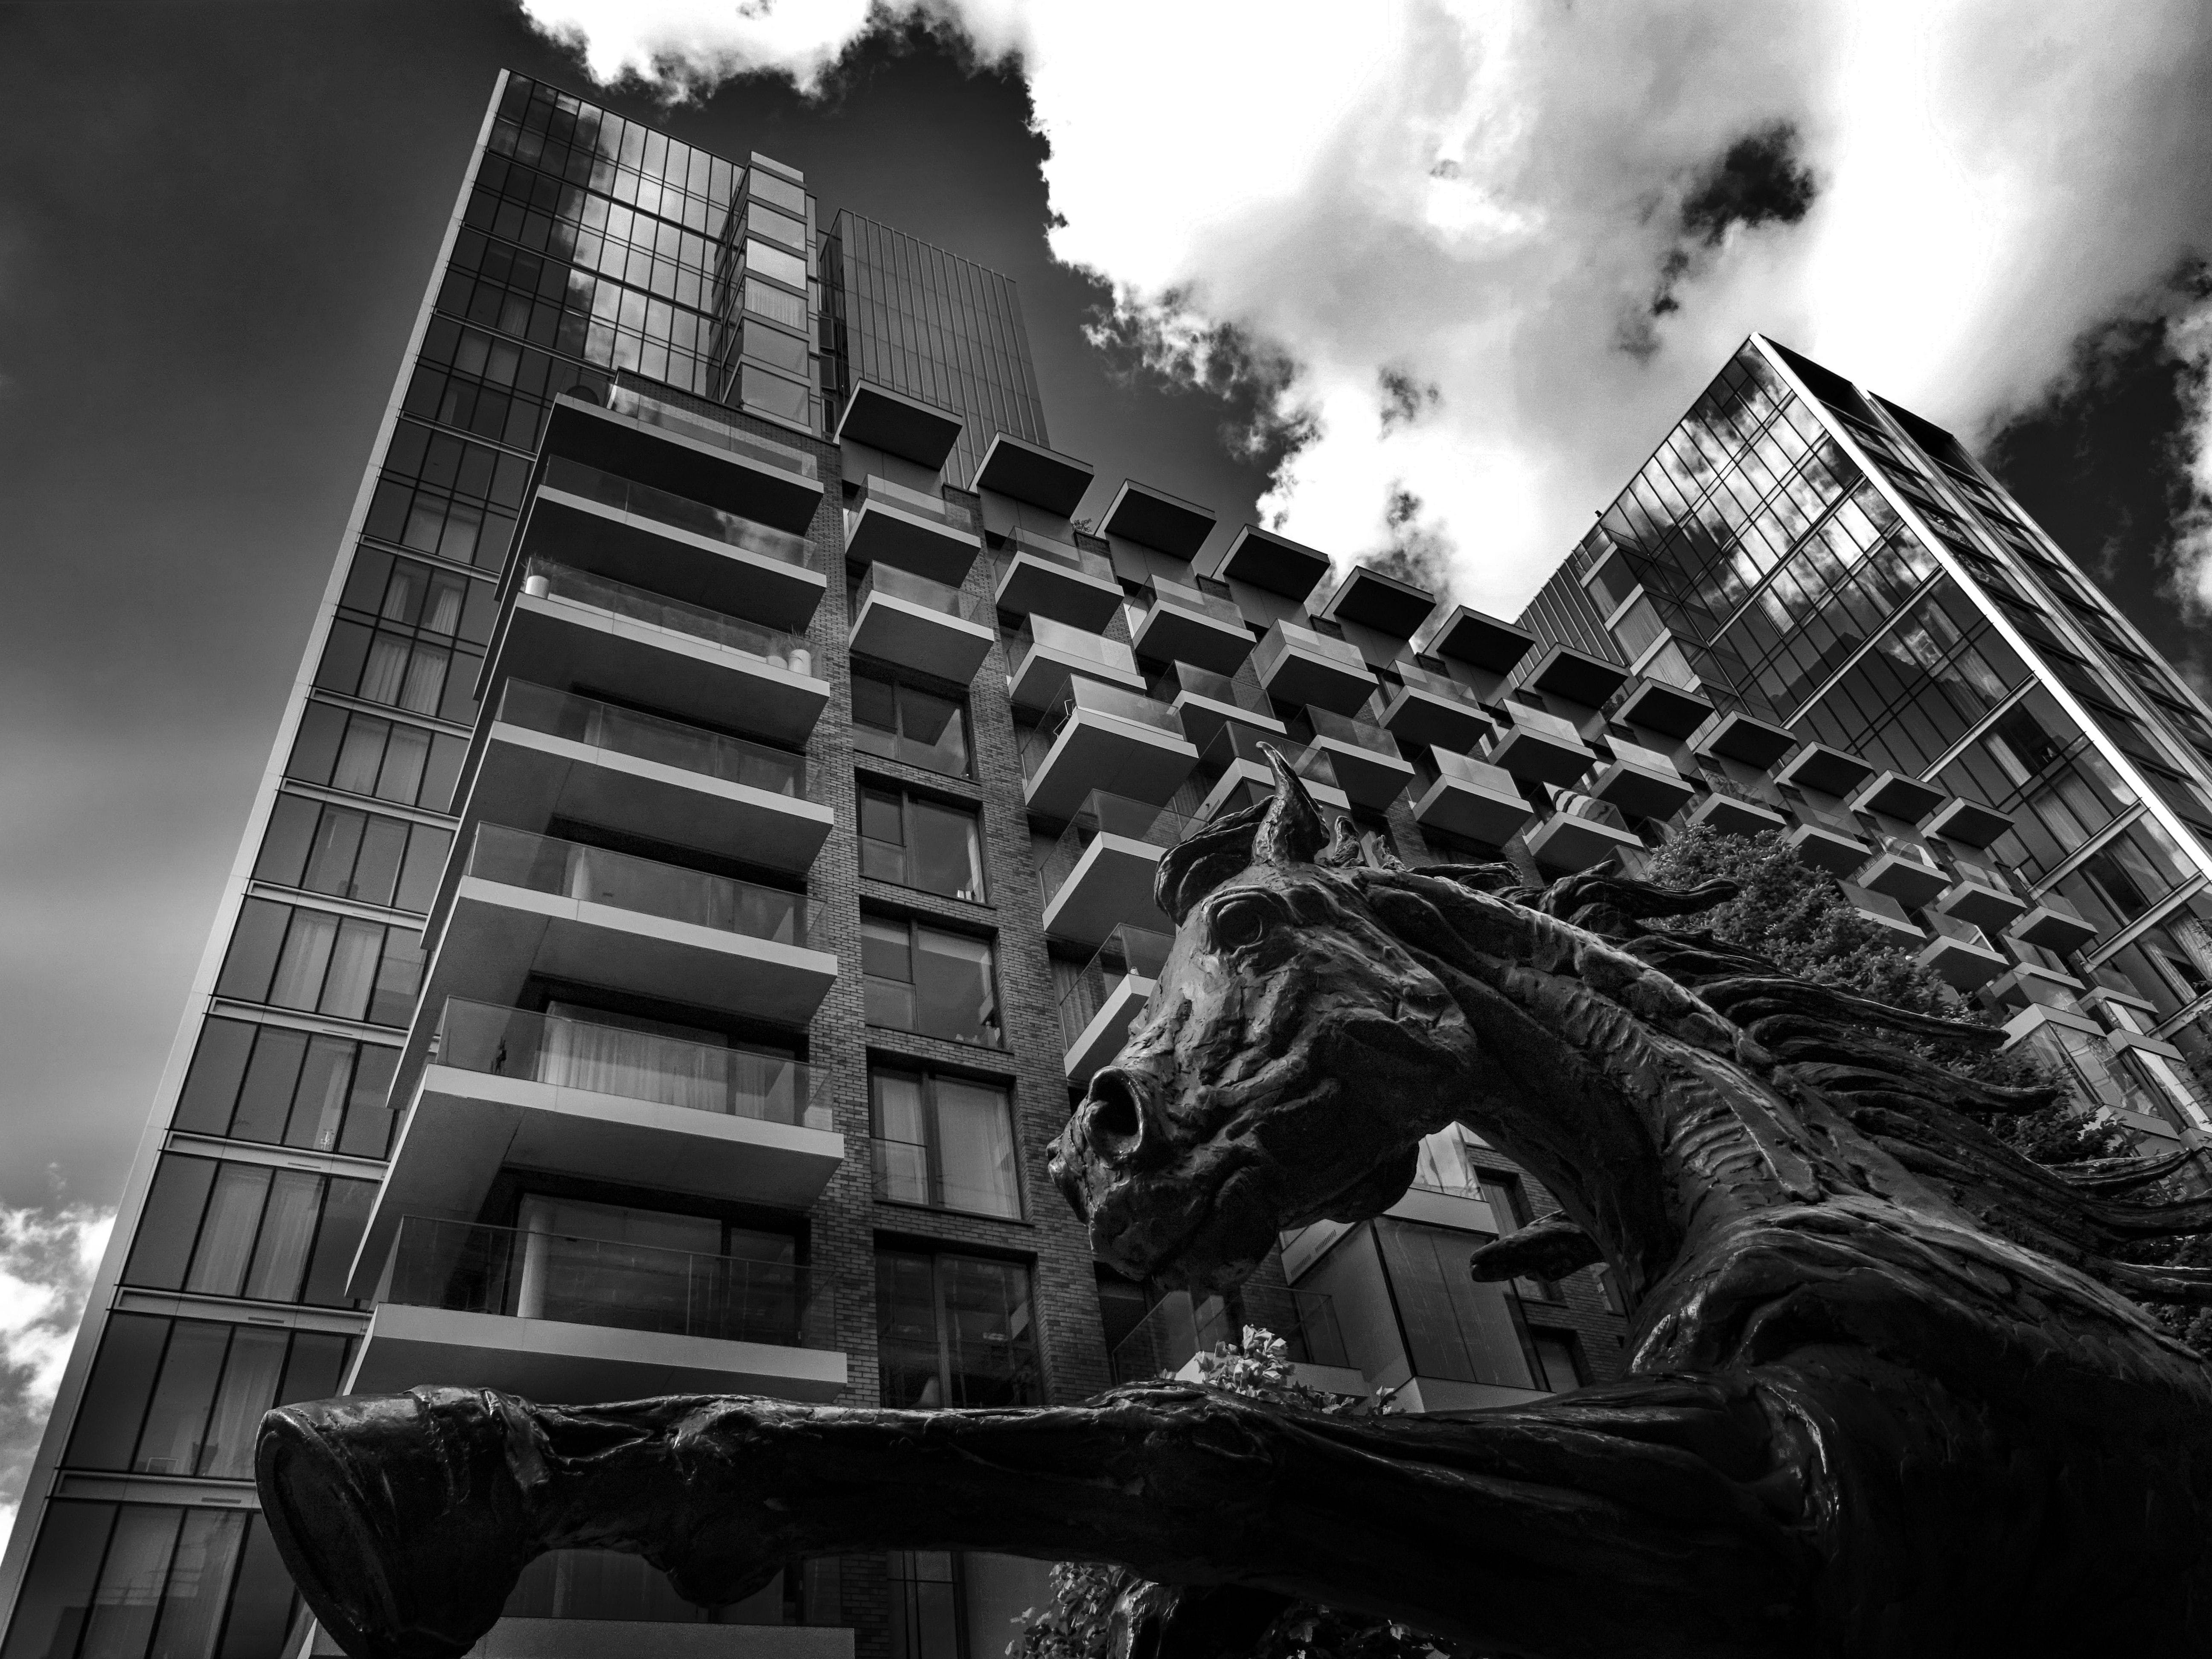 Worm's Eye View Photography of Horse and Building